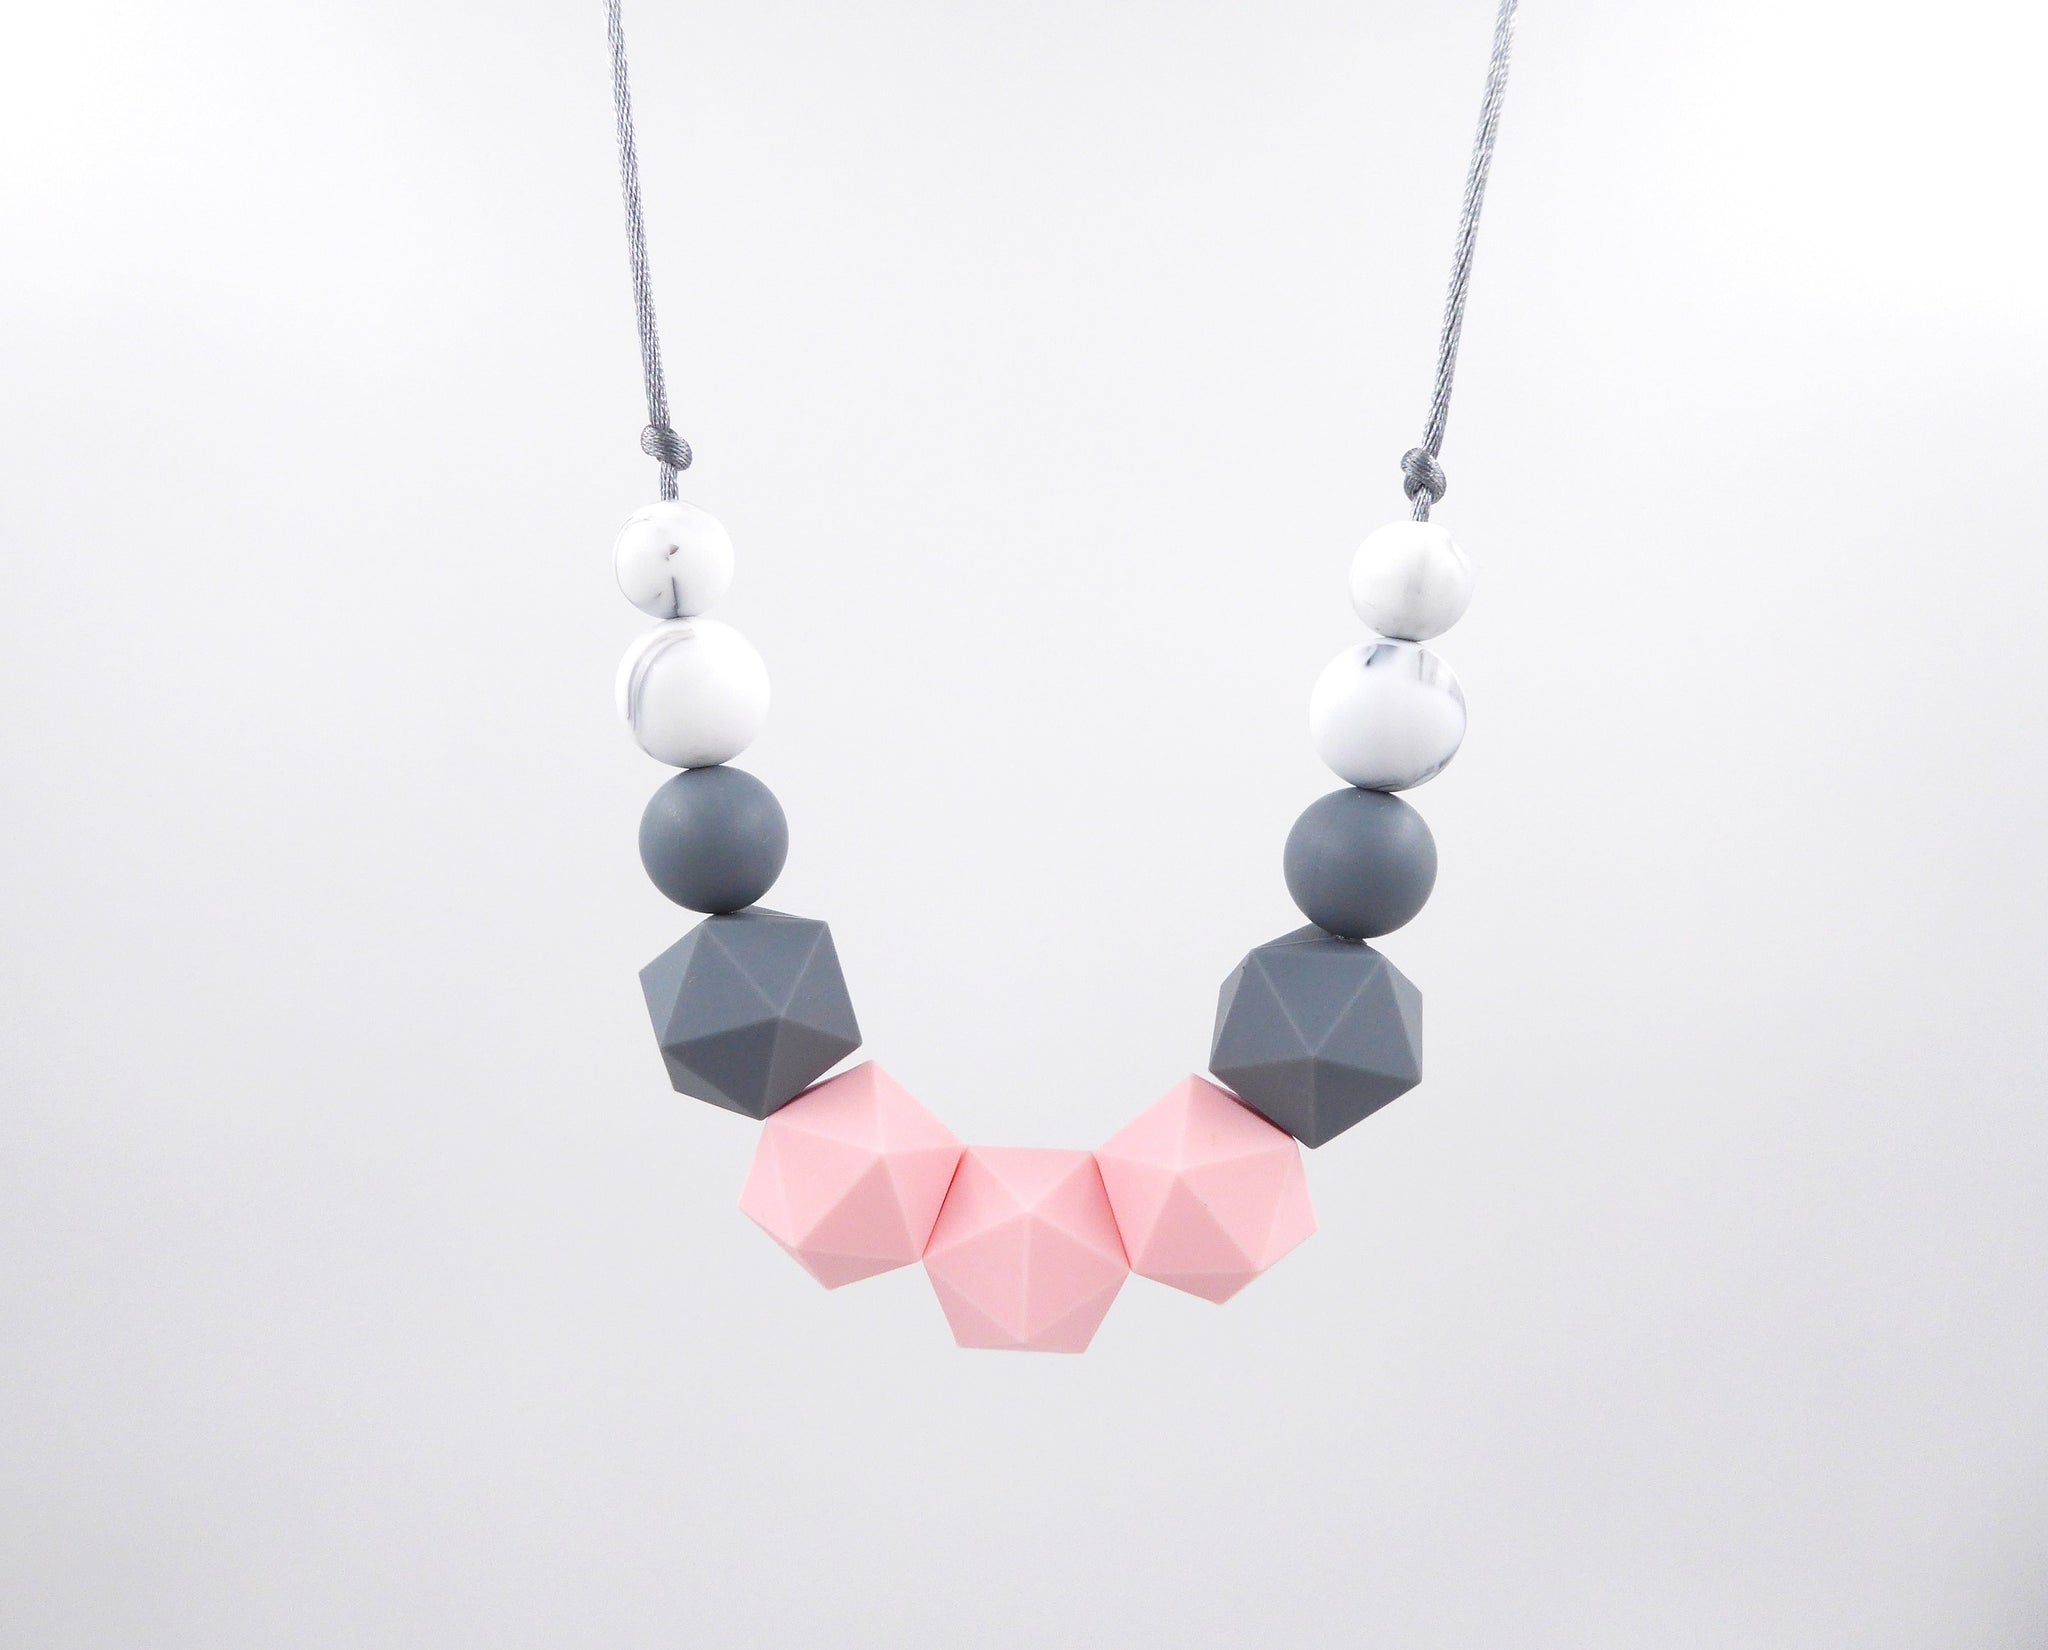 Silicone teething necklace Breastfeeding Nursing necklace